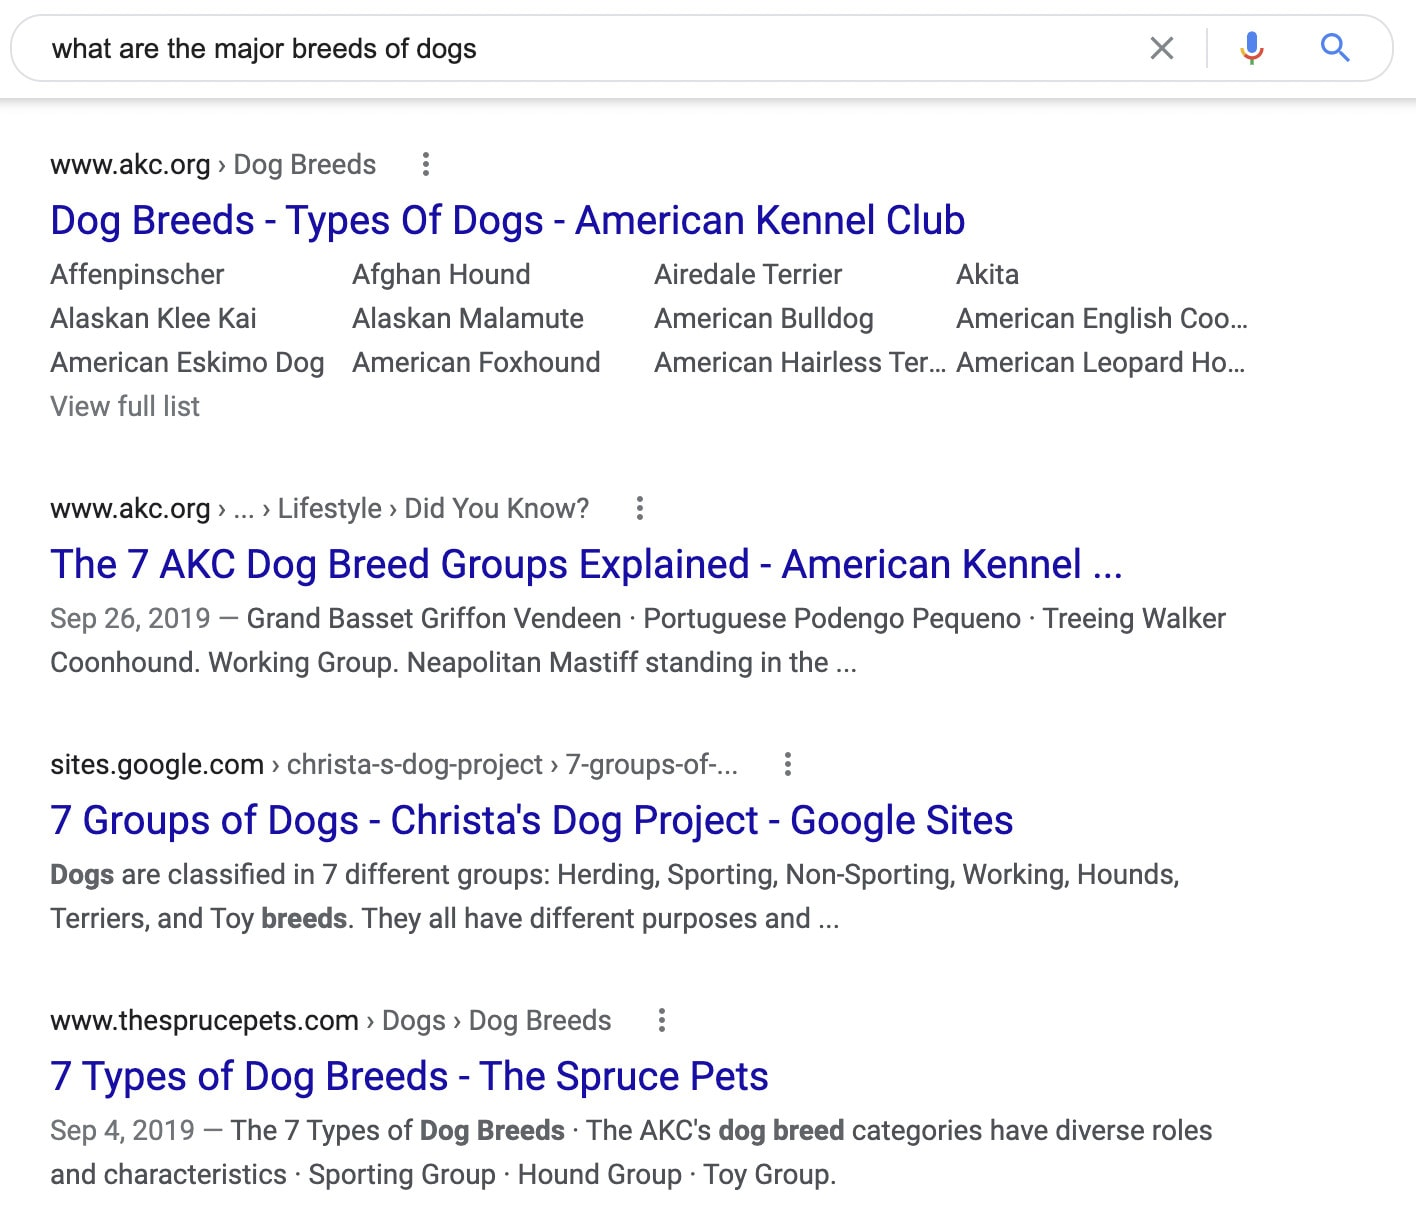 """A SERP that shows results for """"what are the major breeds of dog?"""""""